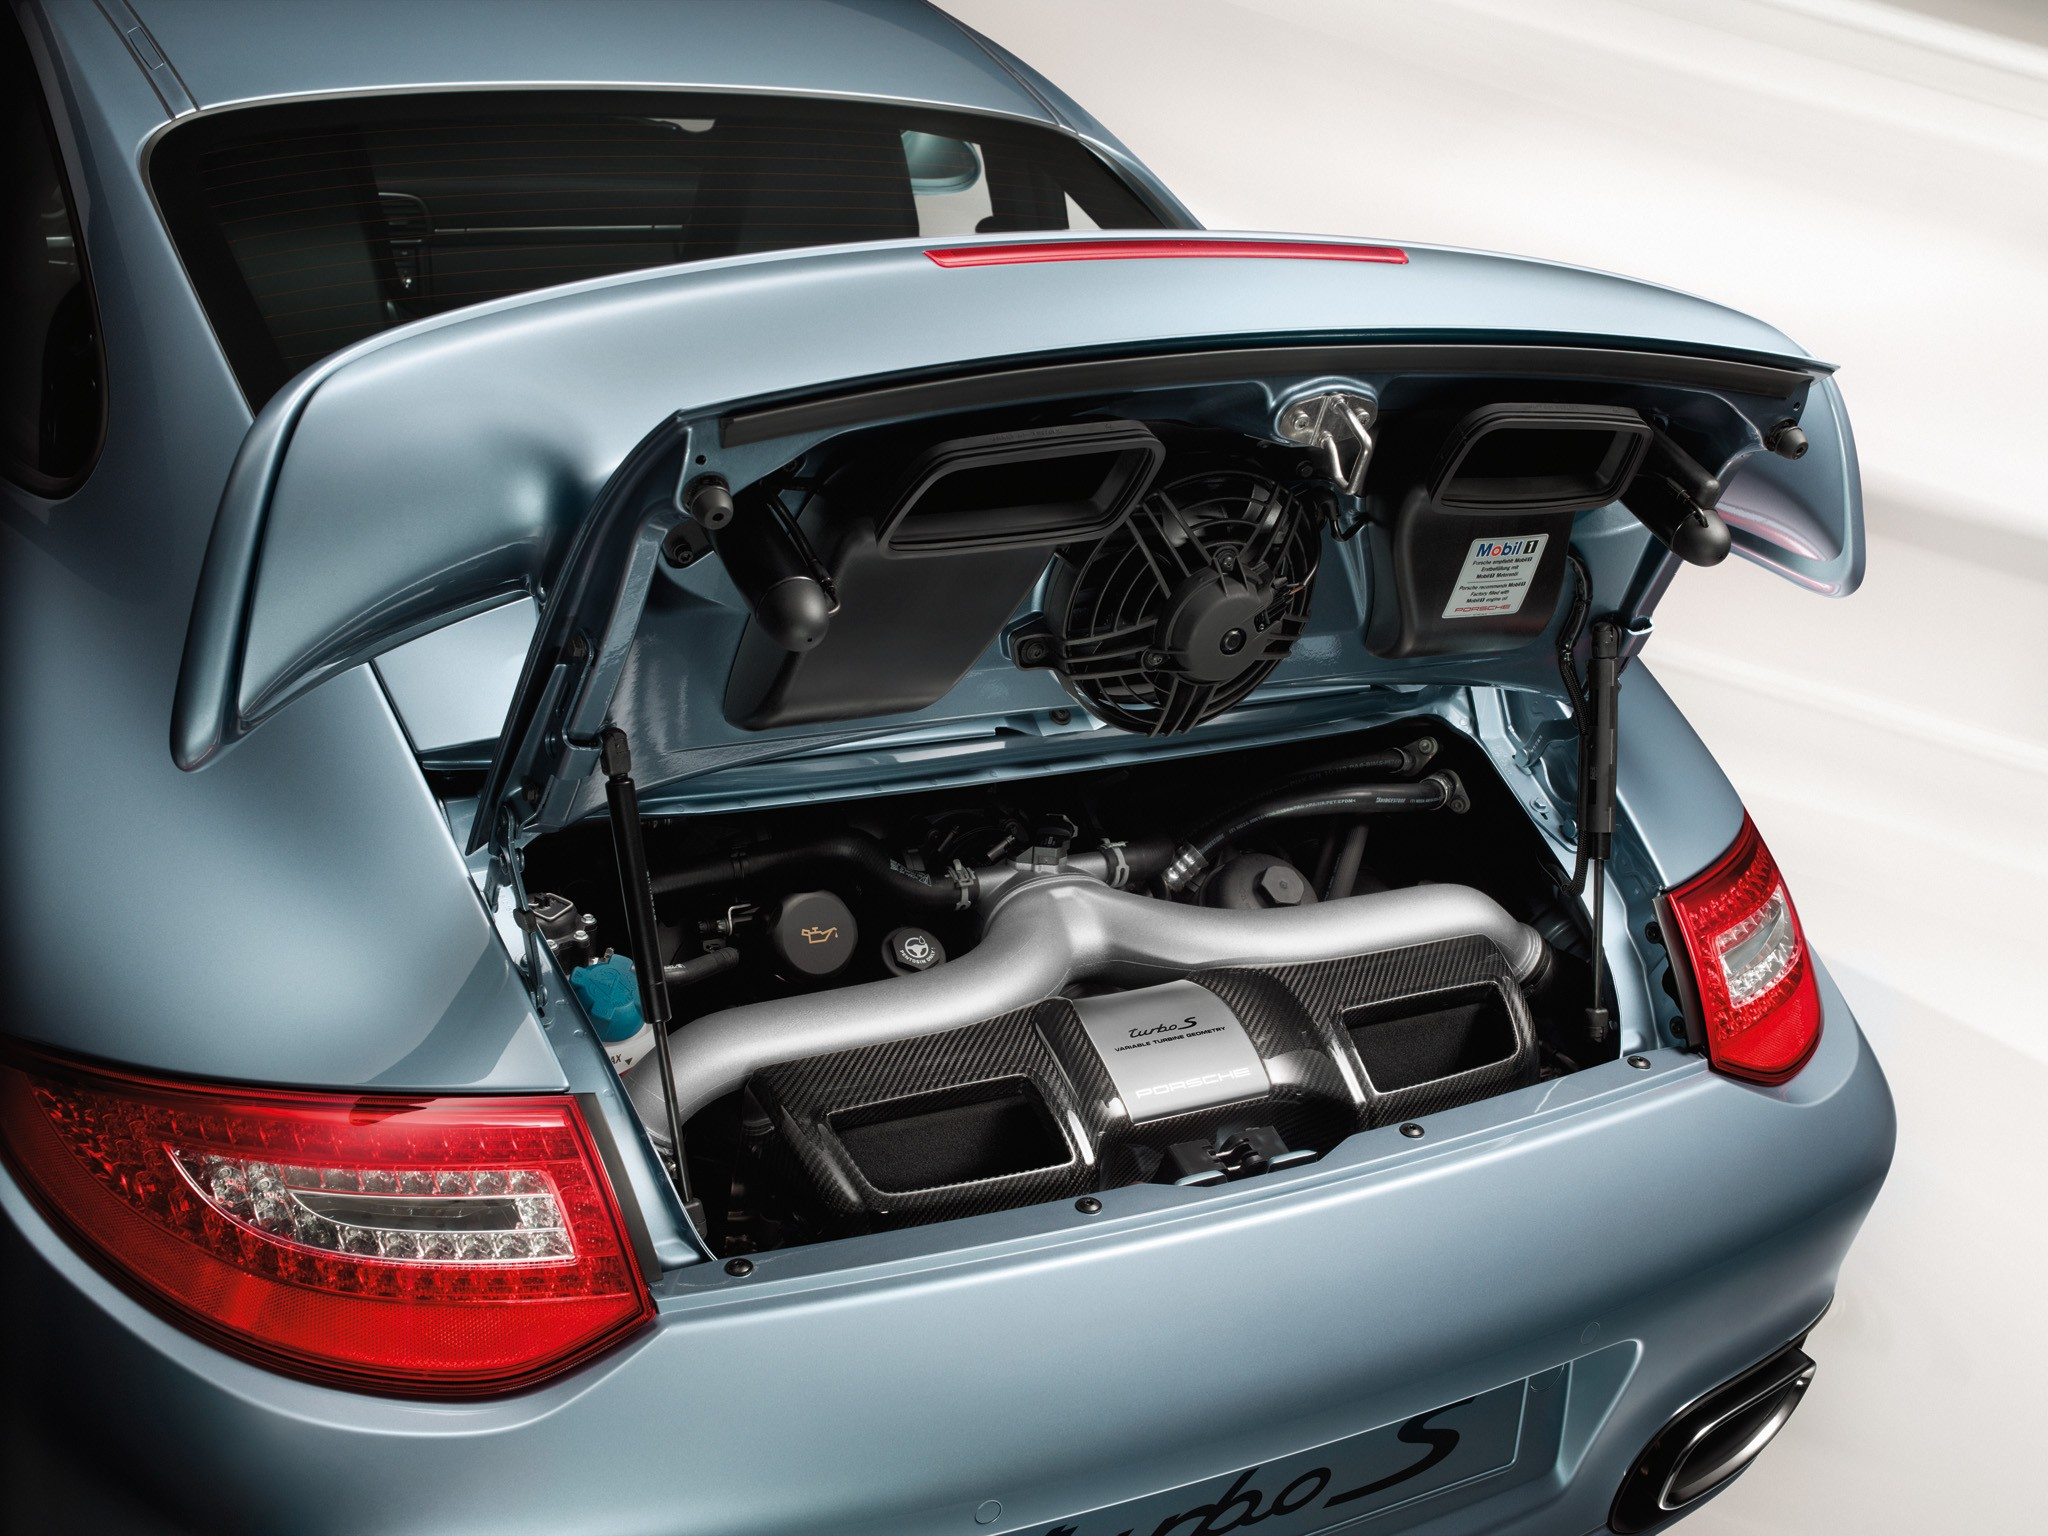 PORSCHE 911 Turbo S 997 Specs Amp Photos 2010 2011